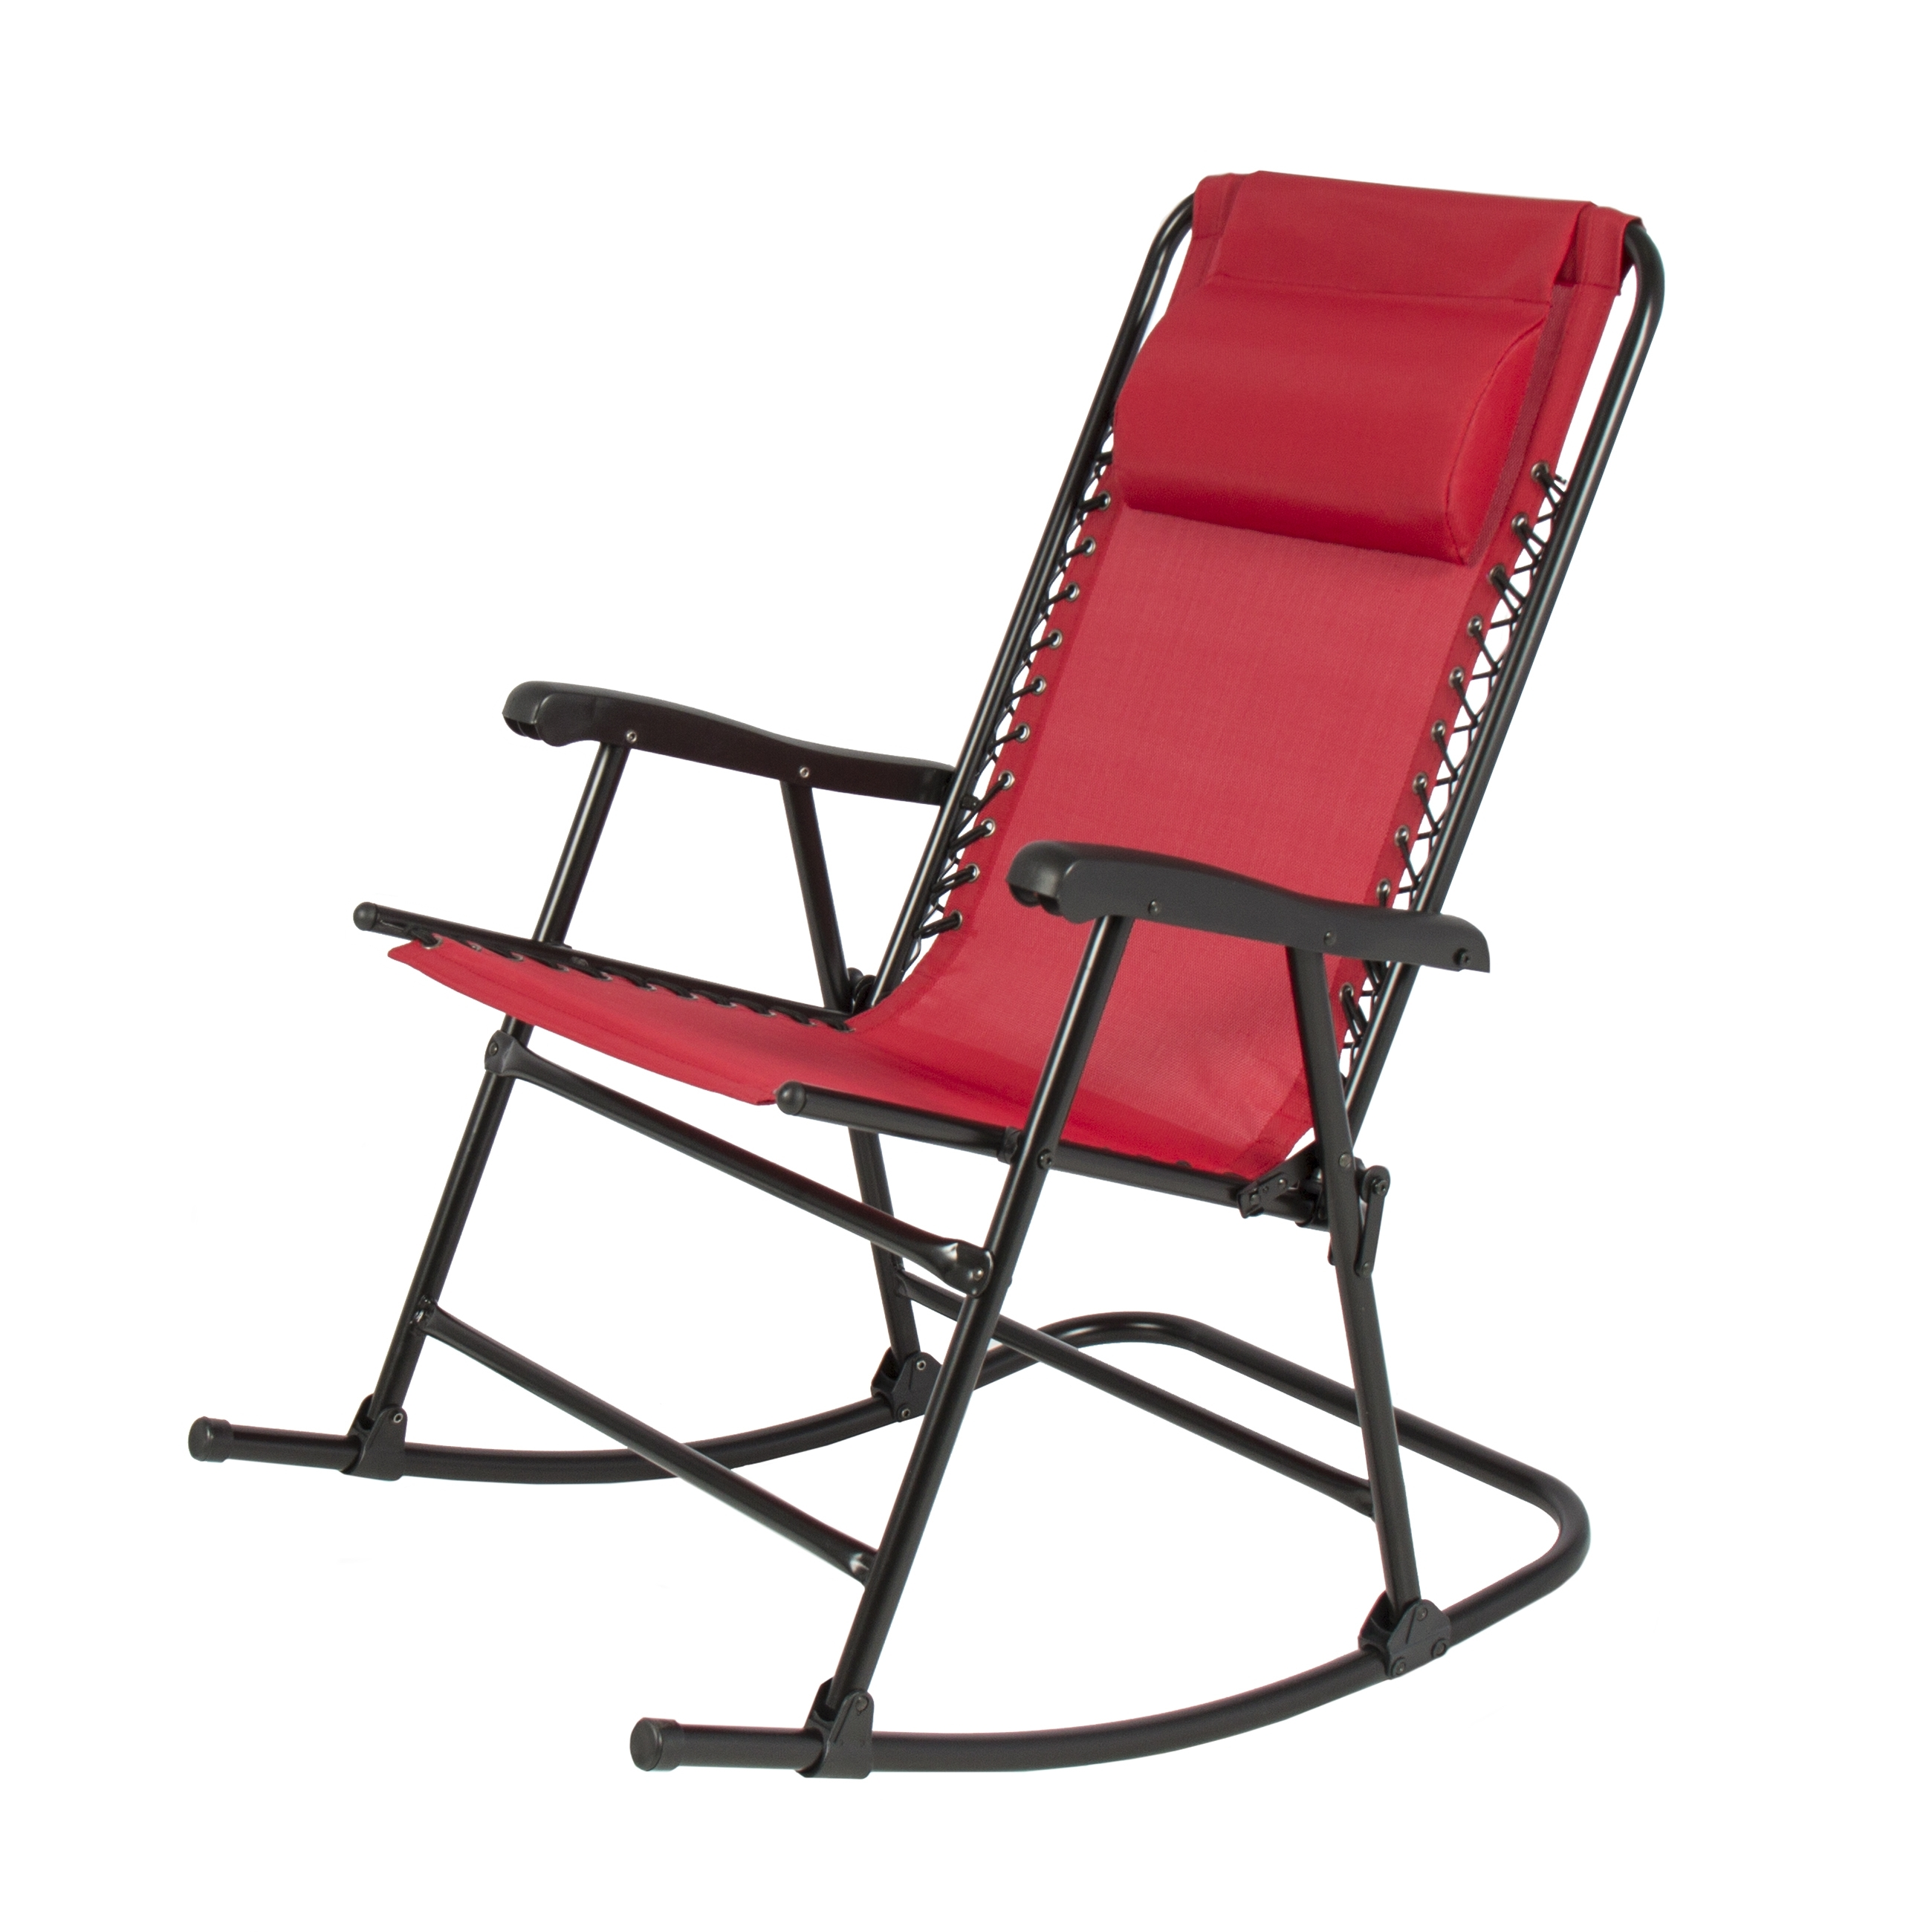 Favorite Better Homes & Gardens Delahey Wood Porch Rocking Chair, Black Throughout Walmart Rocking Chairs (View 5 of 20)